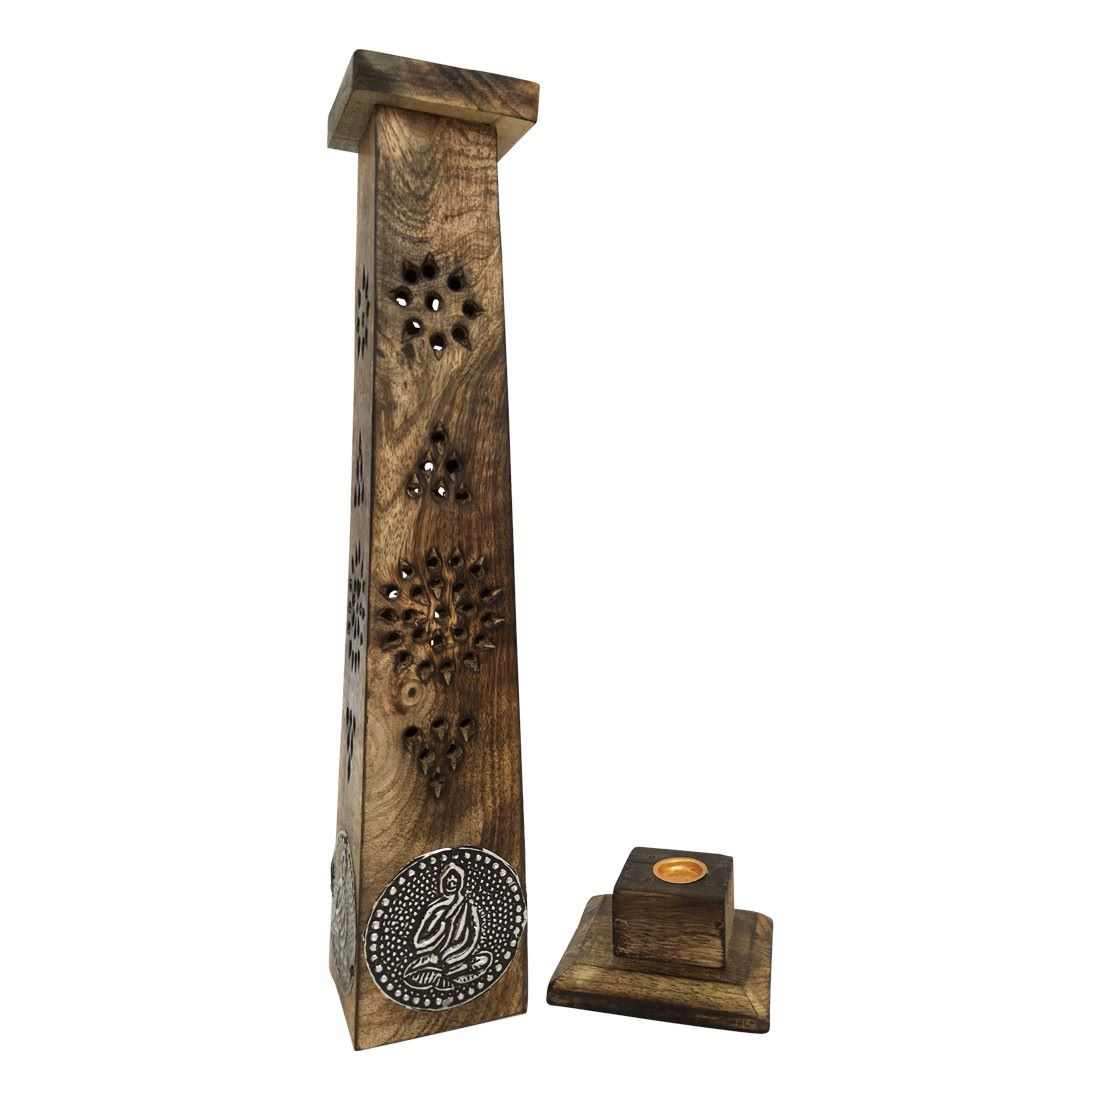 Smoke Towers Mango Wood Incense holder with silver inlay